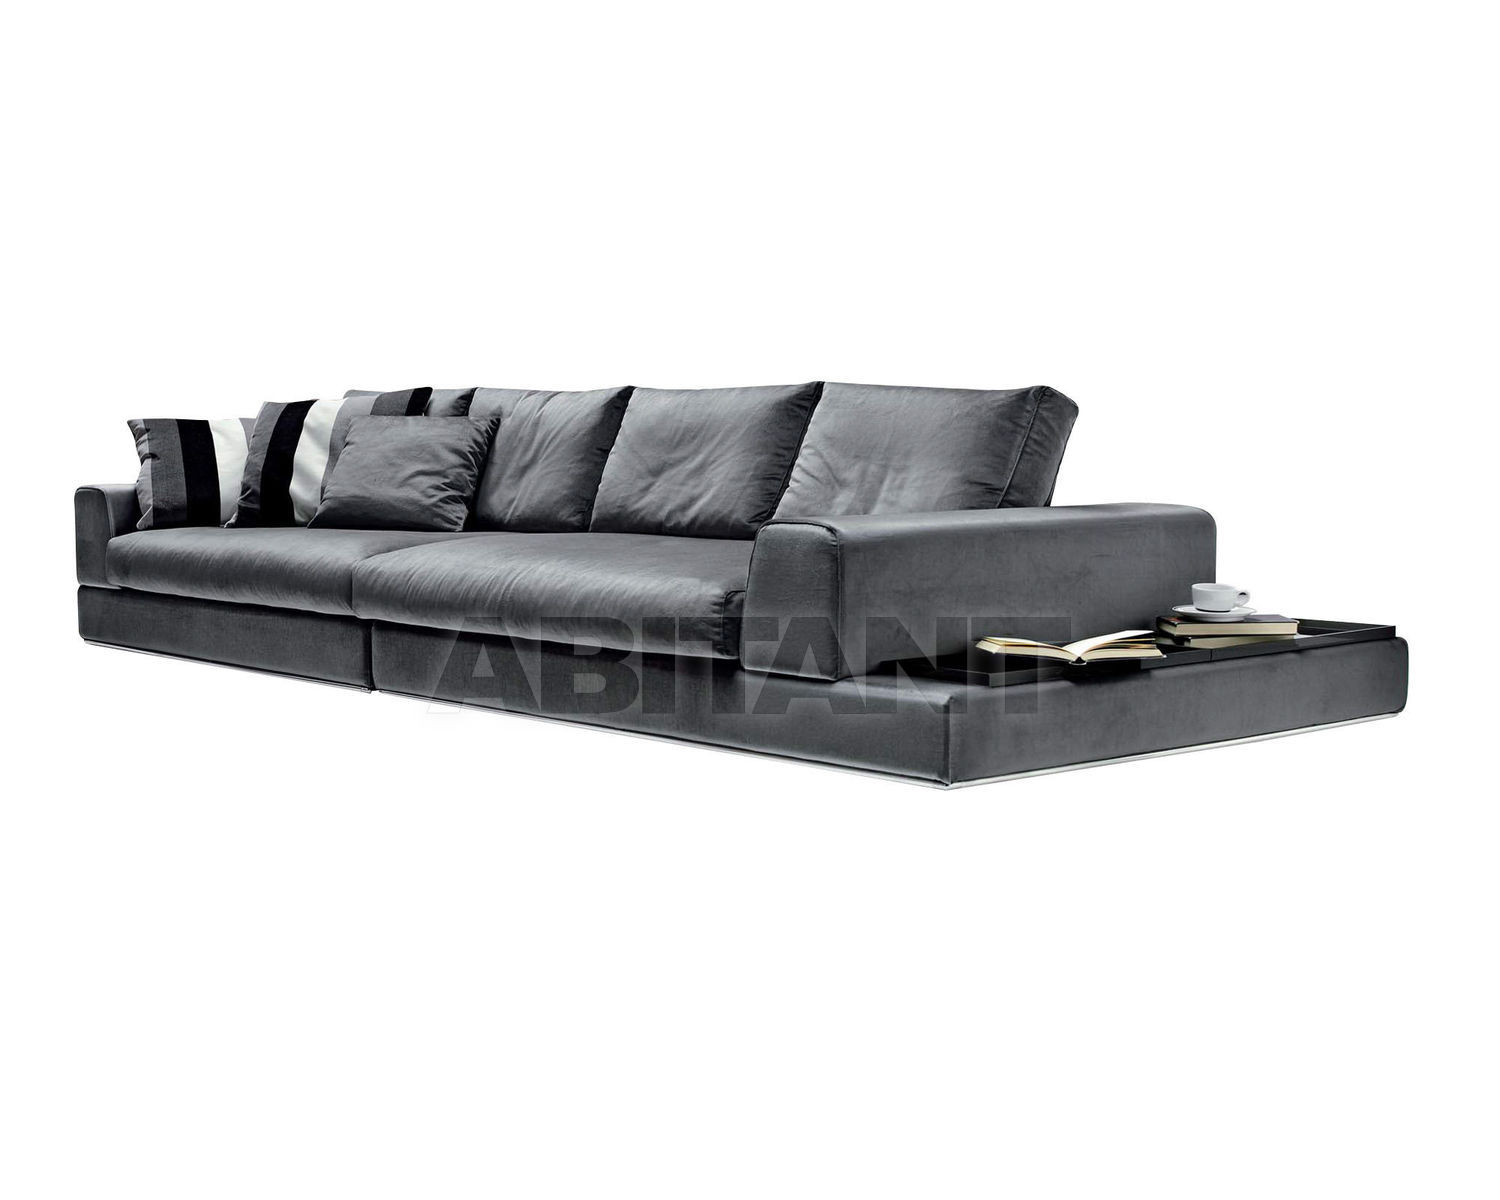 Купить Диван Formerin Contemporary Modern MY WAY PLUS Divano terminale/Sofa with 1 arm + Elemento C